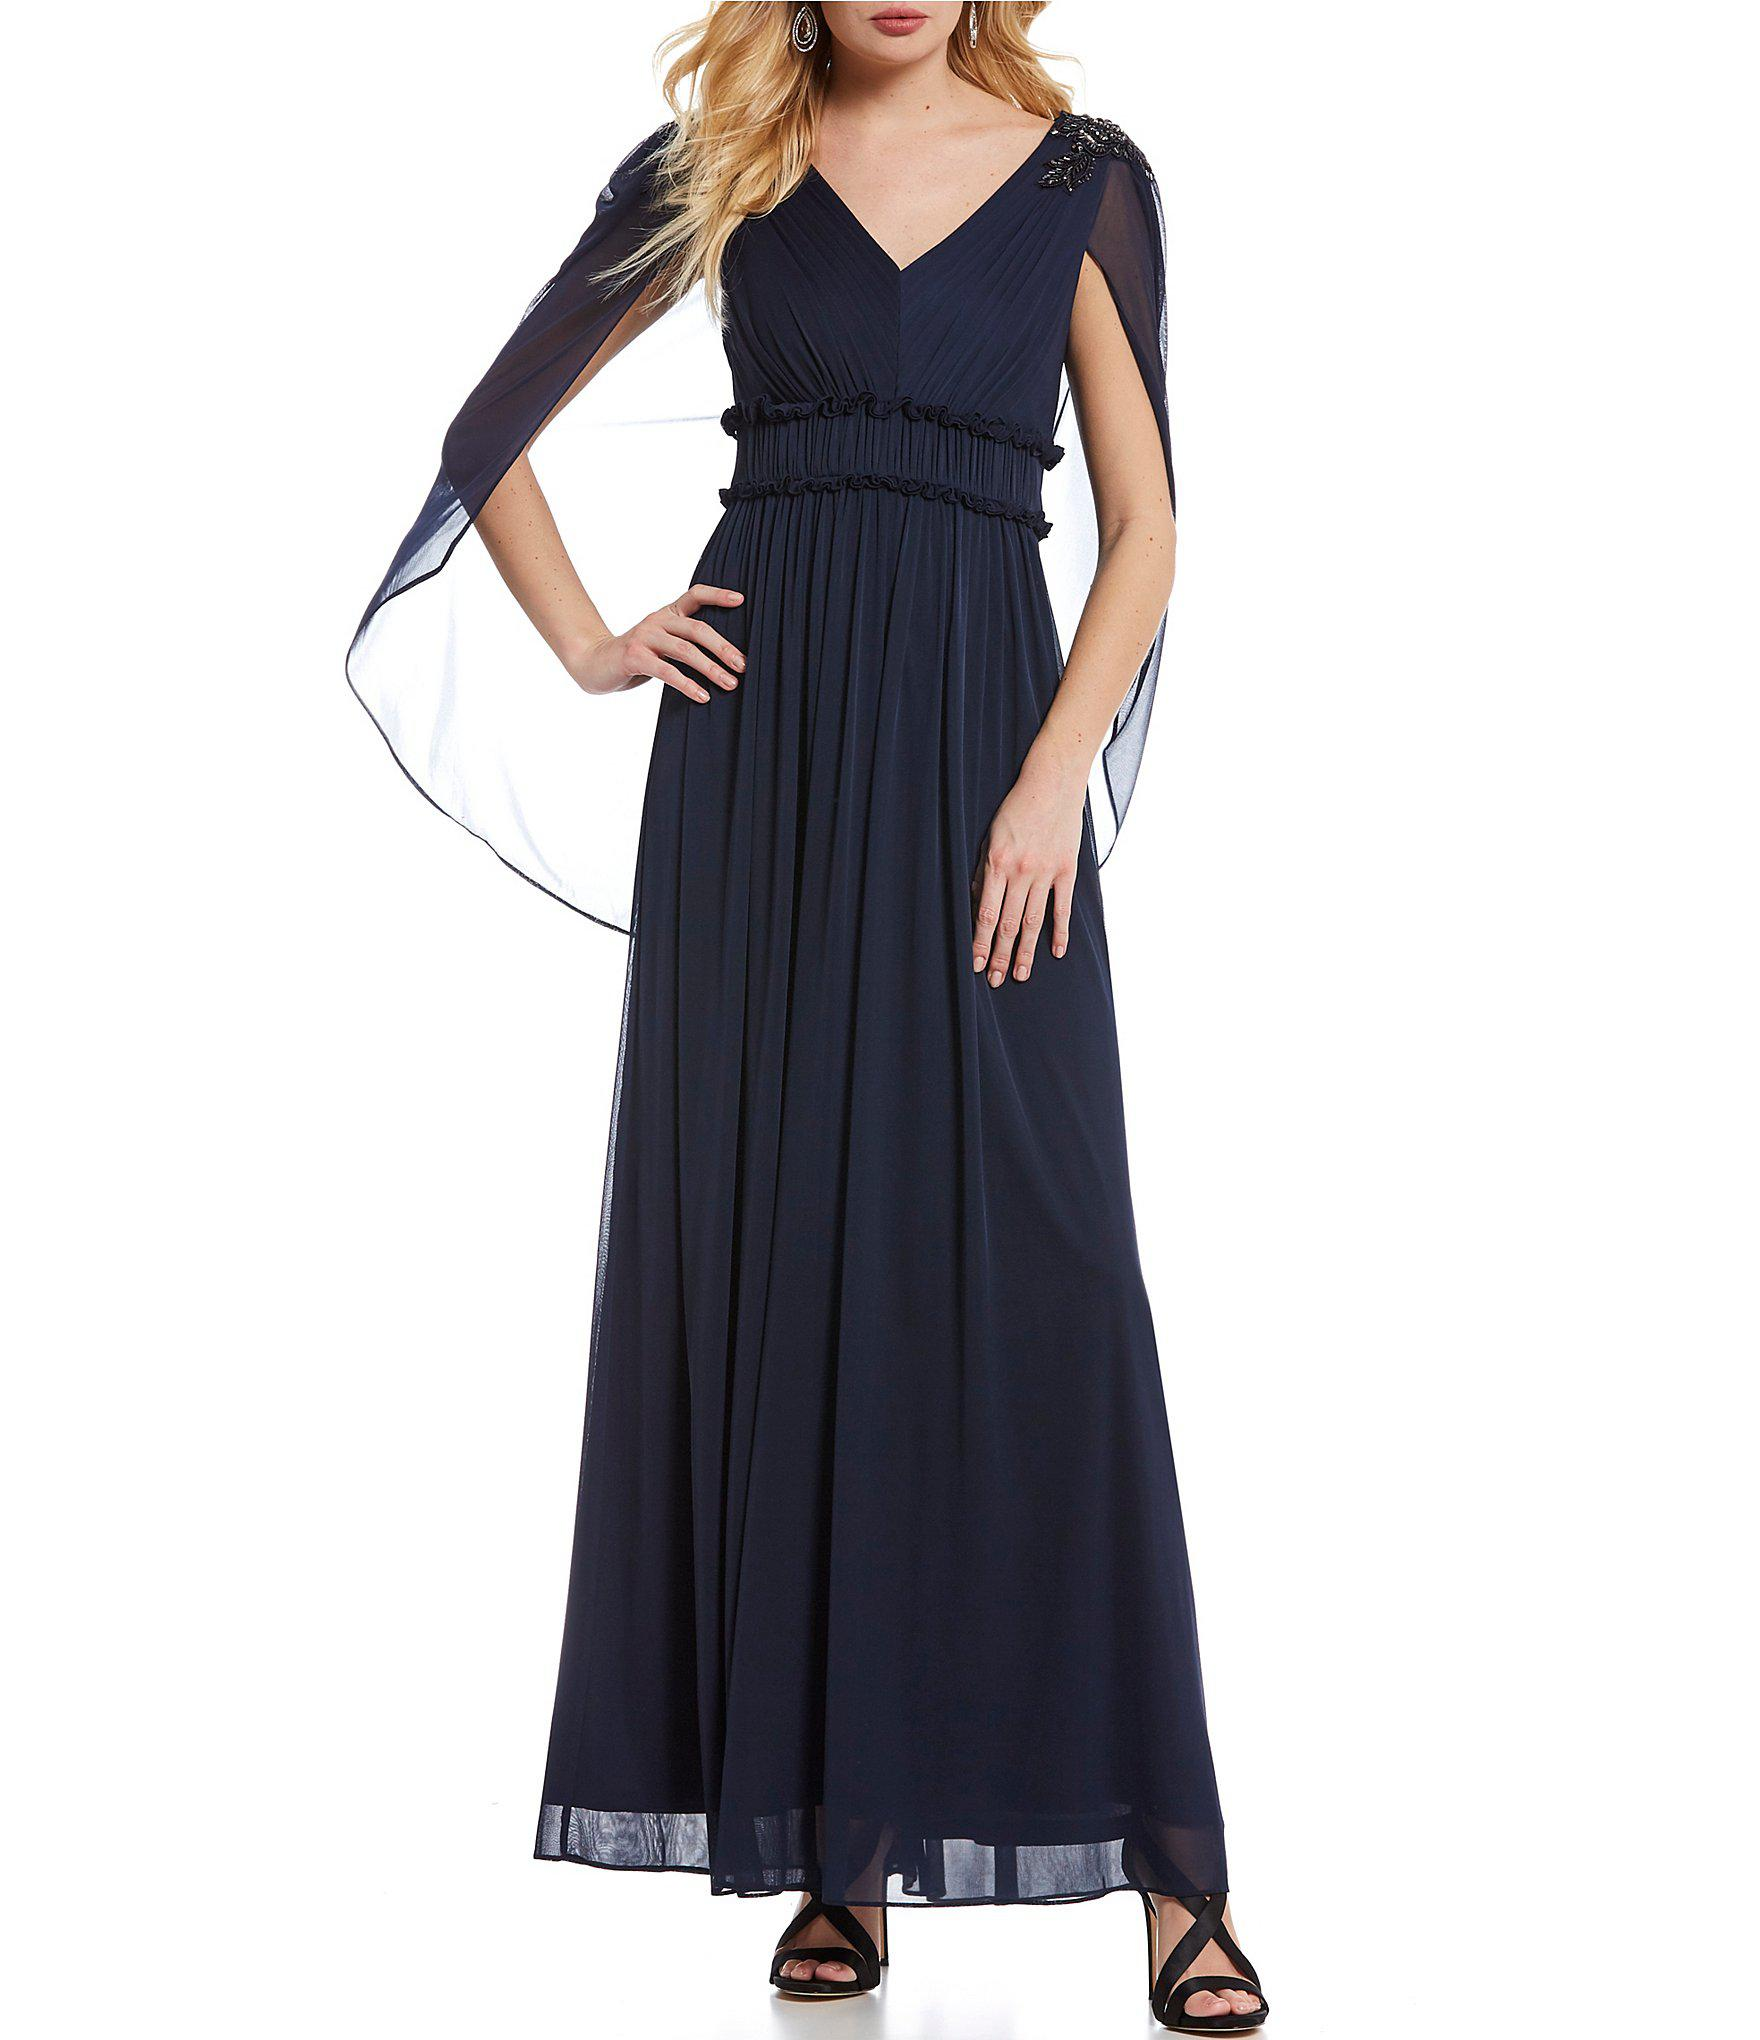 e19947ac4534c Lyst - Adrianna Papell Chiffon Beaded Shoulder Capelet Gown in Blue